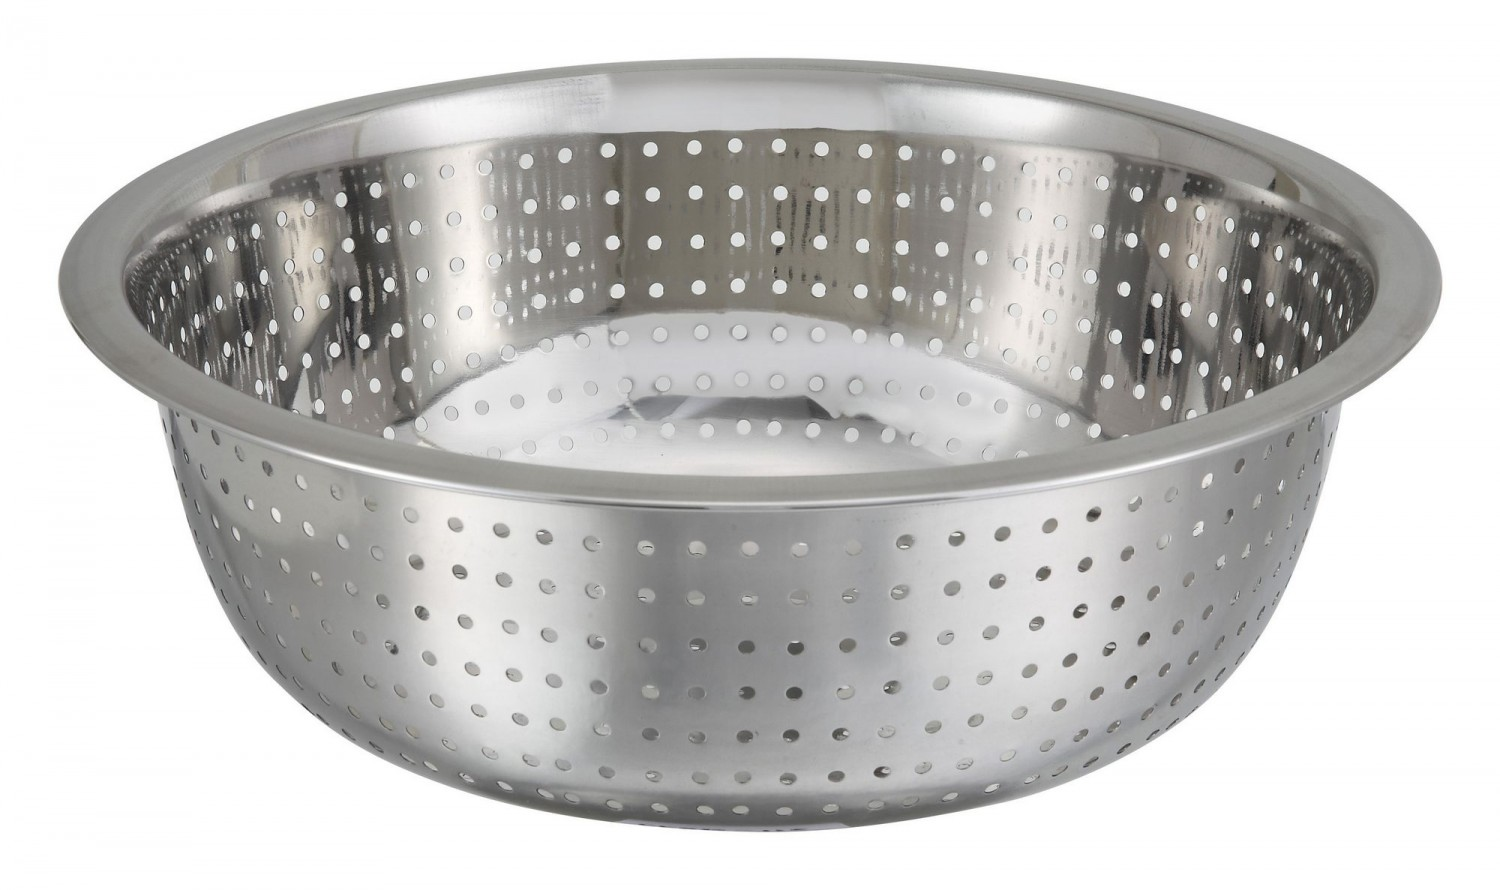 Winco CCOD-11S Stainless Steel Chinese Colander with Small Holes 12.75 Qt.